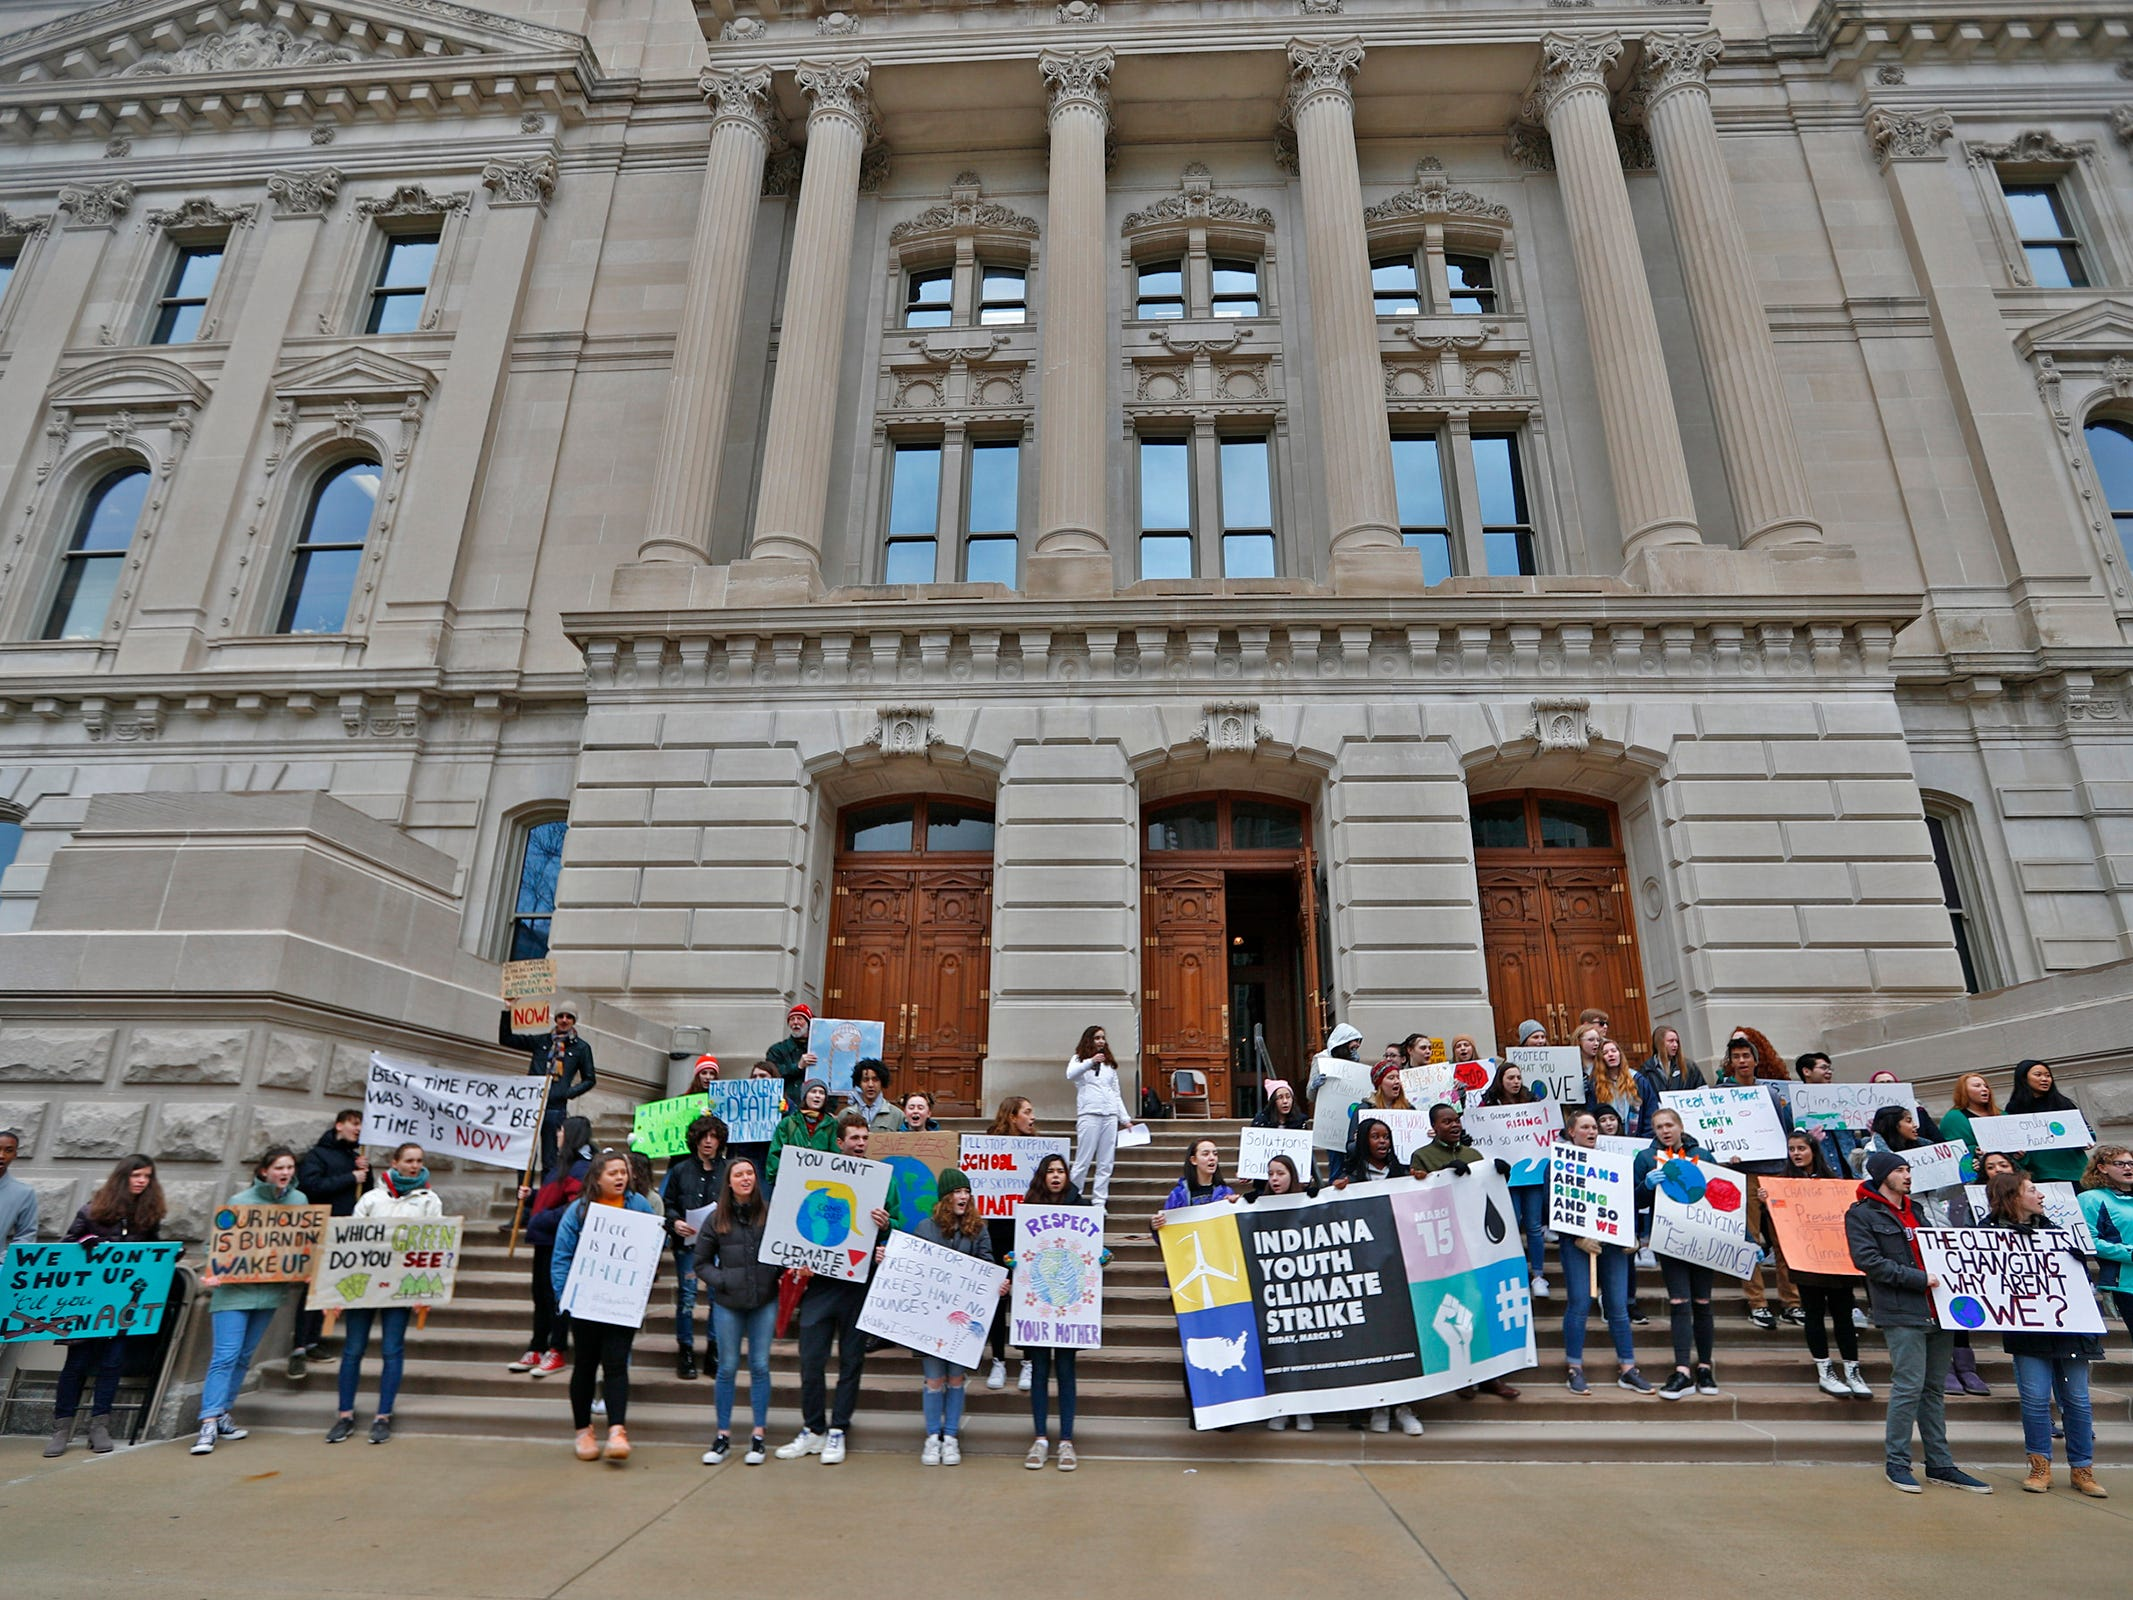 Early in the rally, students gather with signs on the sound steps of the Indiana Statehouse, during the Indiana part of the international Climate Strike, Friday, March 15, 2019, held outside the Indiana Statehouse.  Following in the footsteps of 16-year-old Swedish trailblazer, Greta Thunberg, students around the world are skipping school to protest government inaction on climate change.  The Indiana rally ended up with over 250 participants.